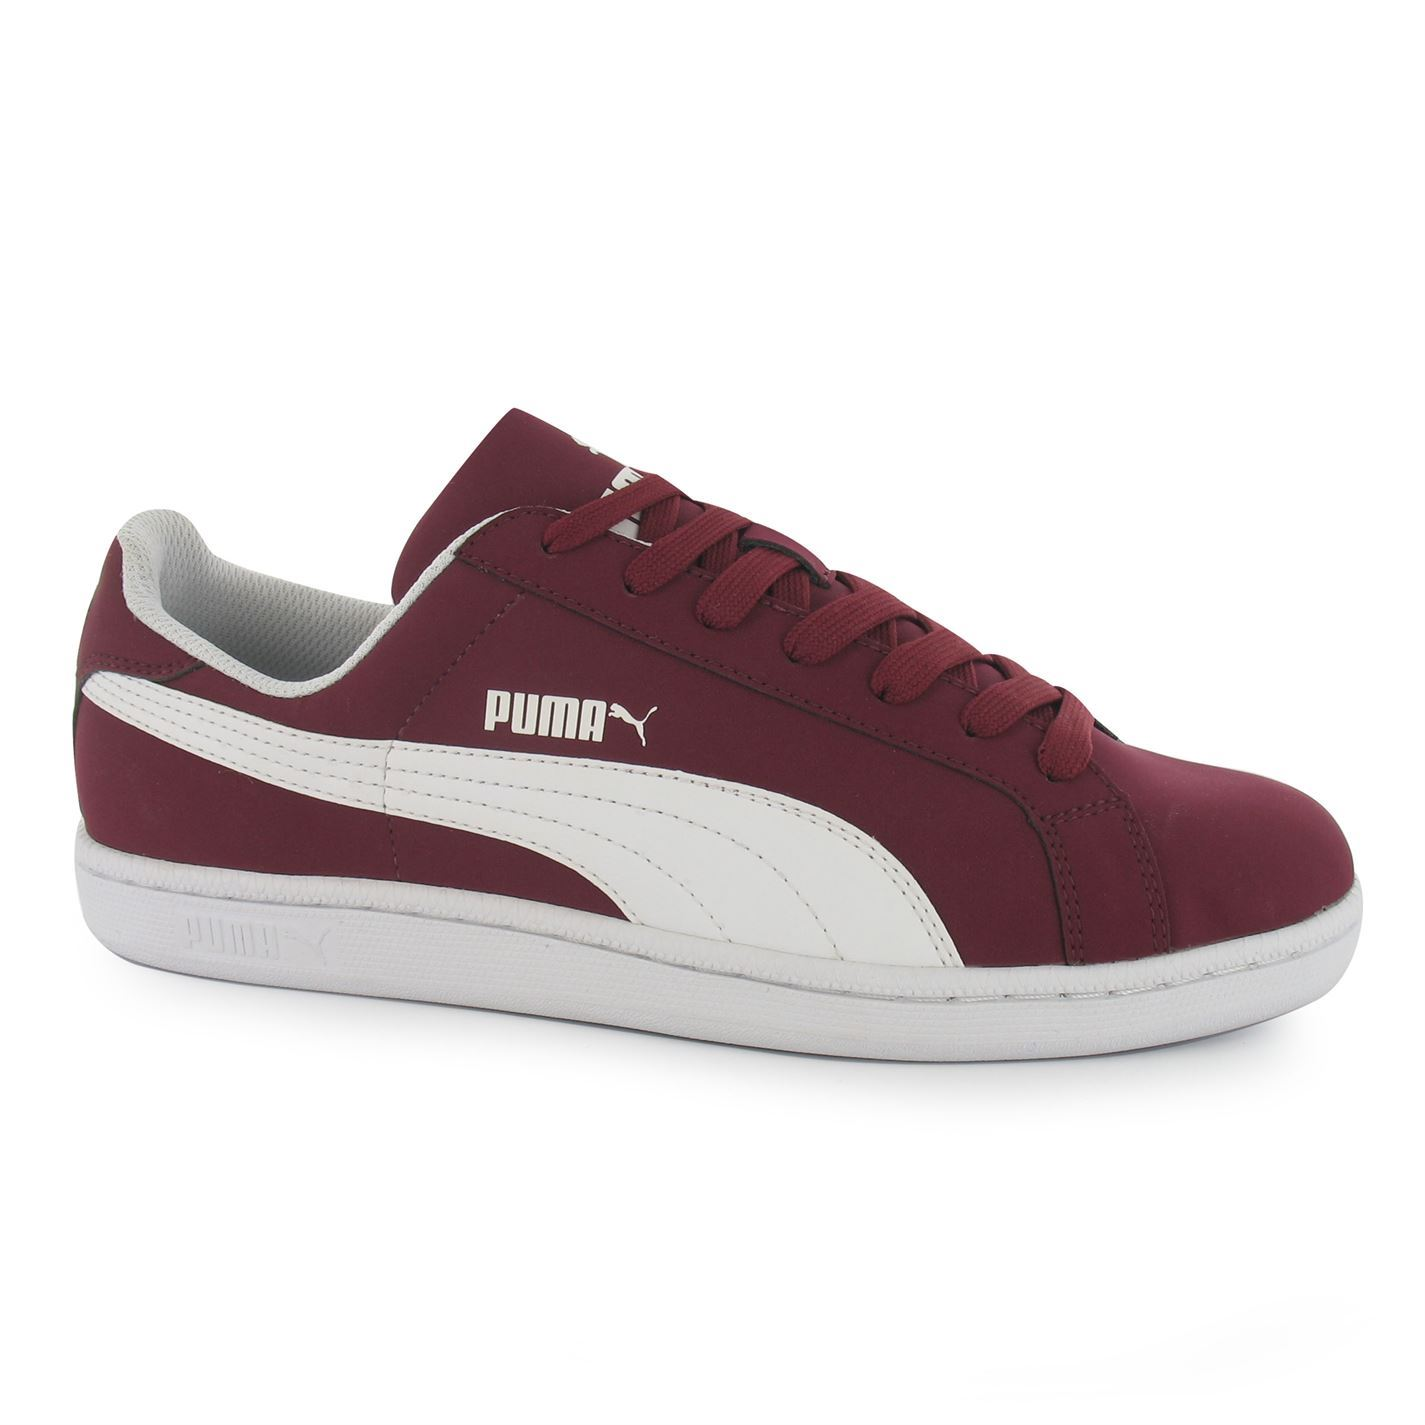 d4a28a7fc051 Details about Puma Smash Nubuck Casual Trainers Mens Burg Wht Fashion  Trainers Sneakers Shoes